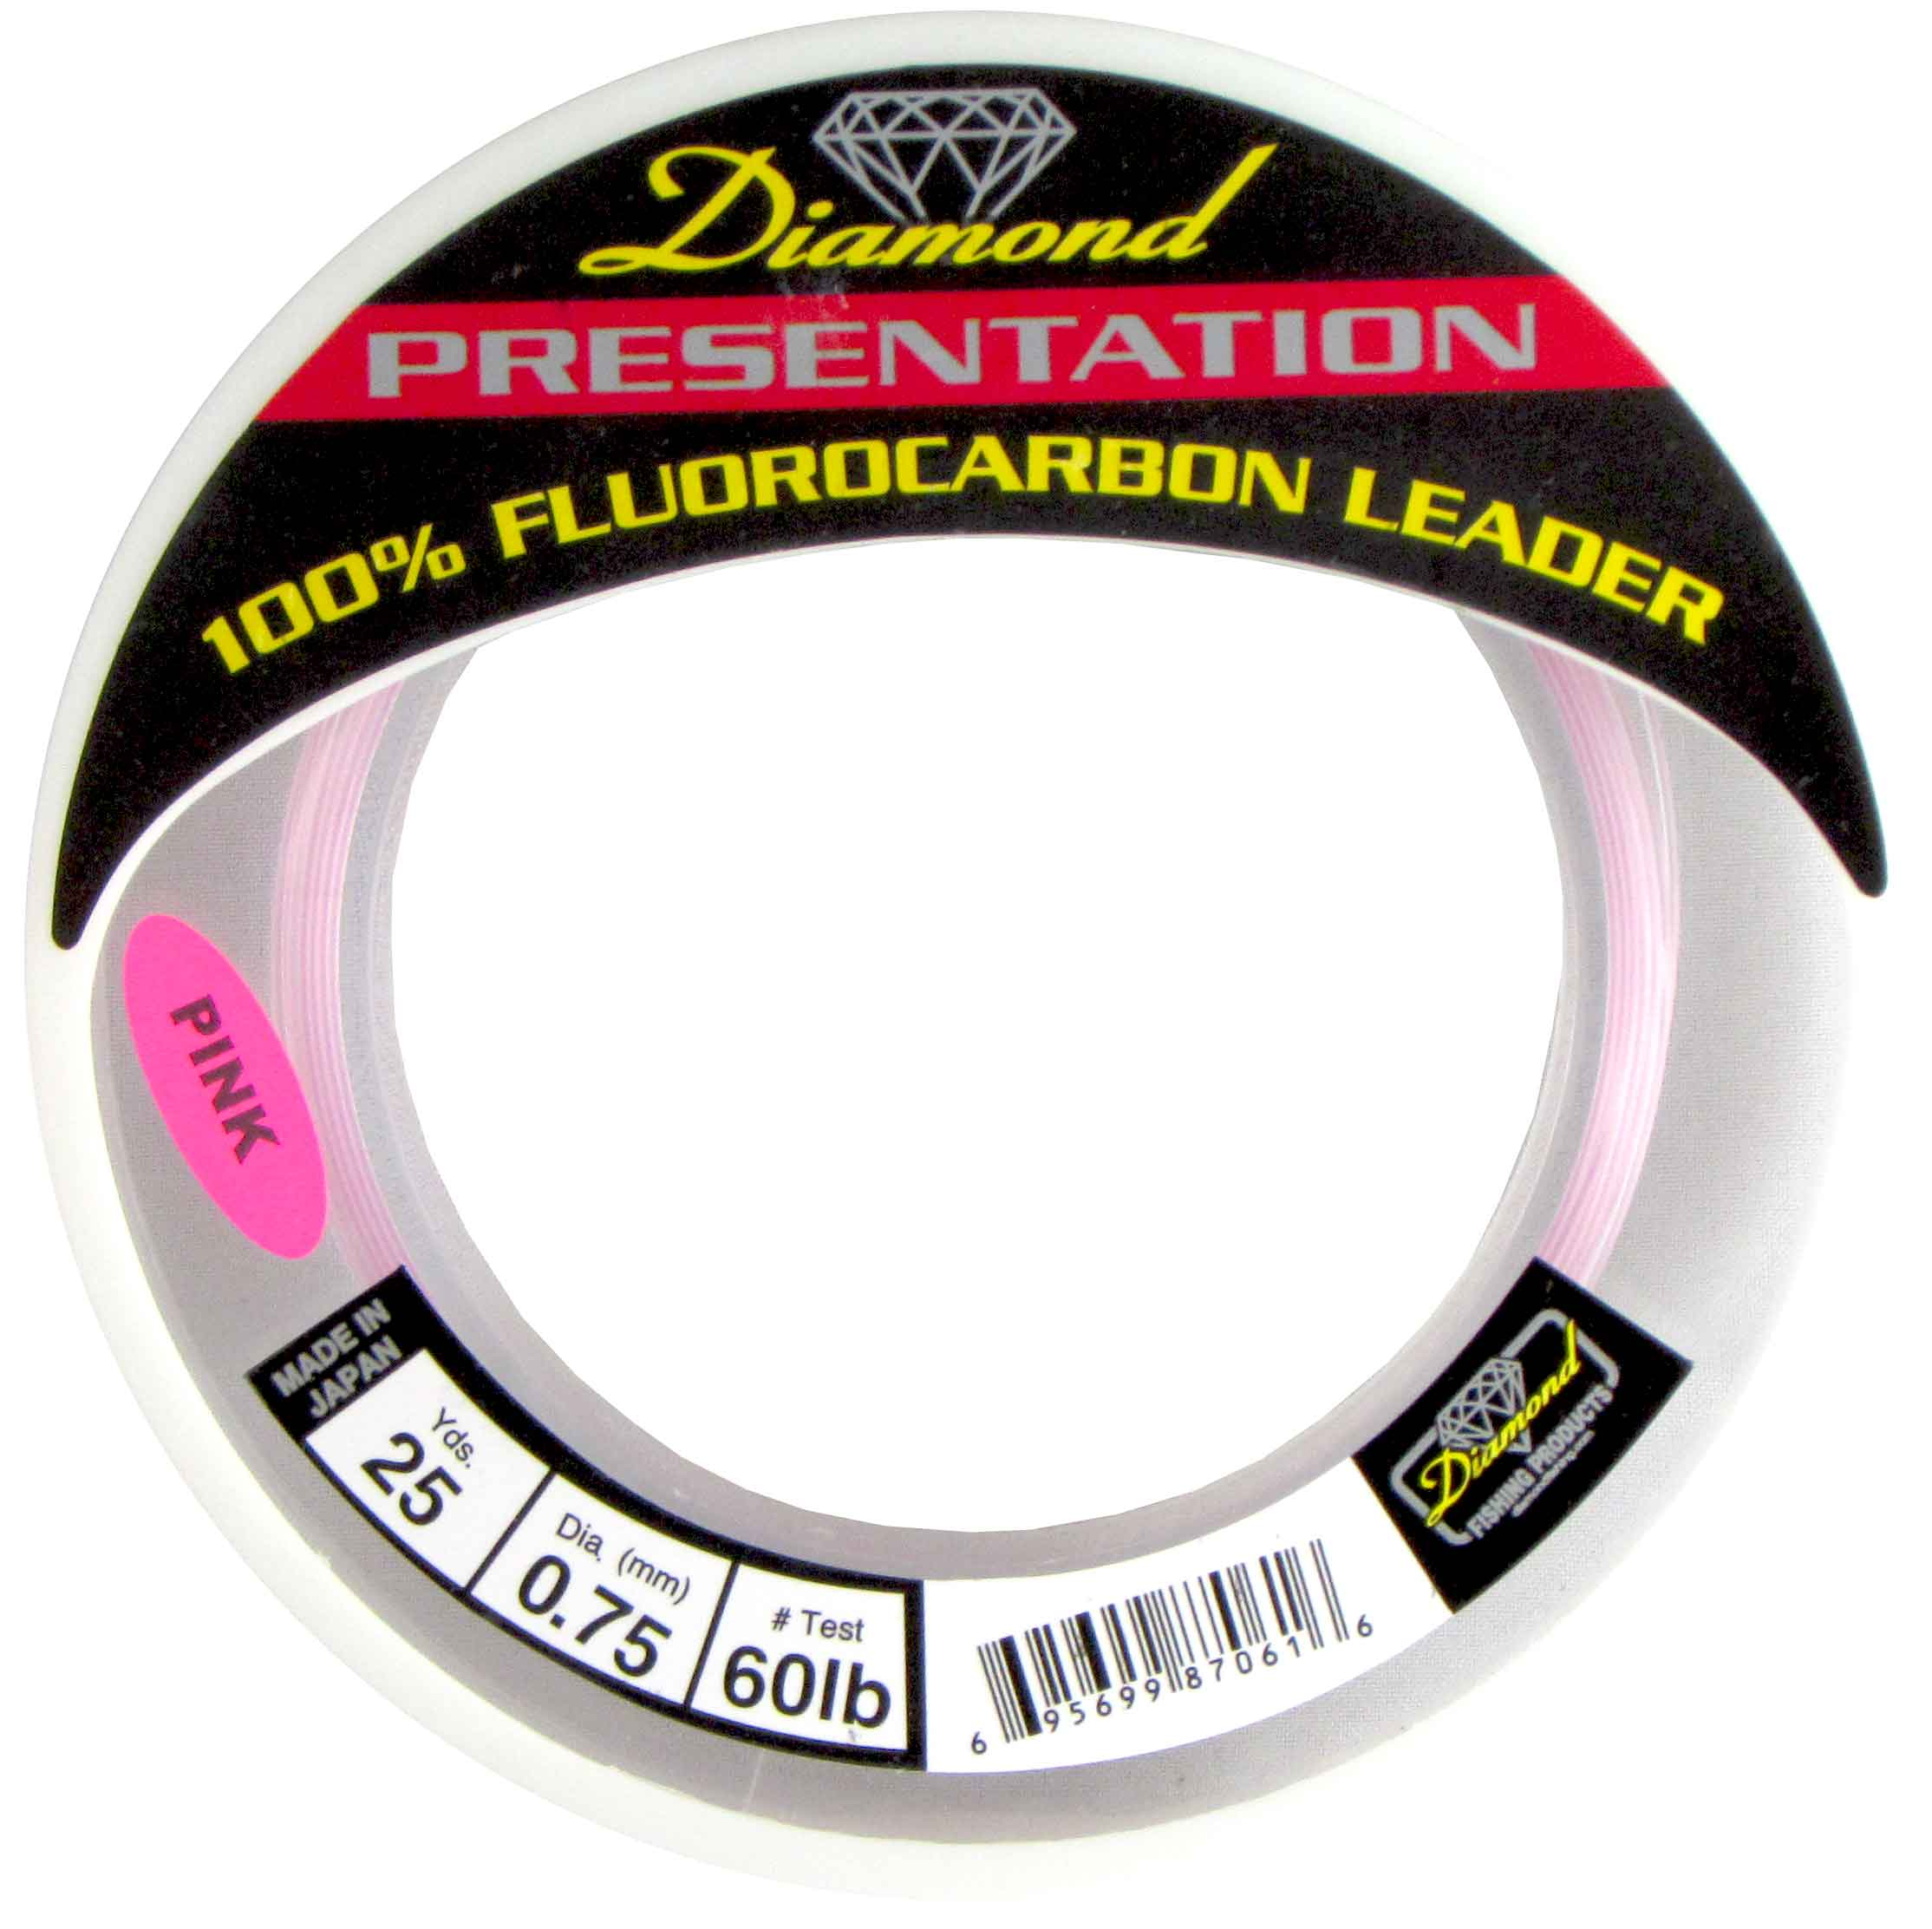 MOMOI Diamond Presentation Fluorocarbon Leader 60Lb Test 25Yds Pink